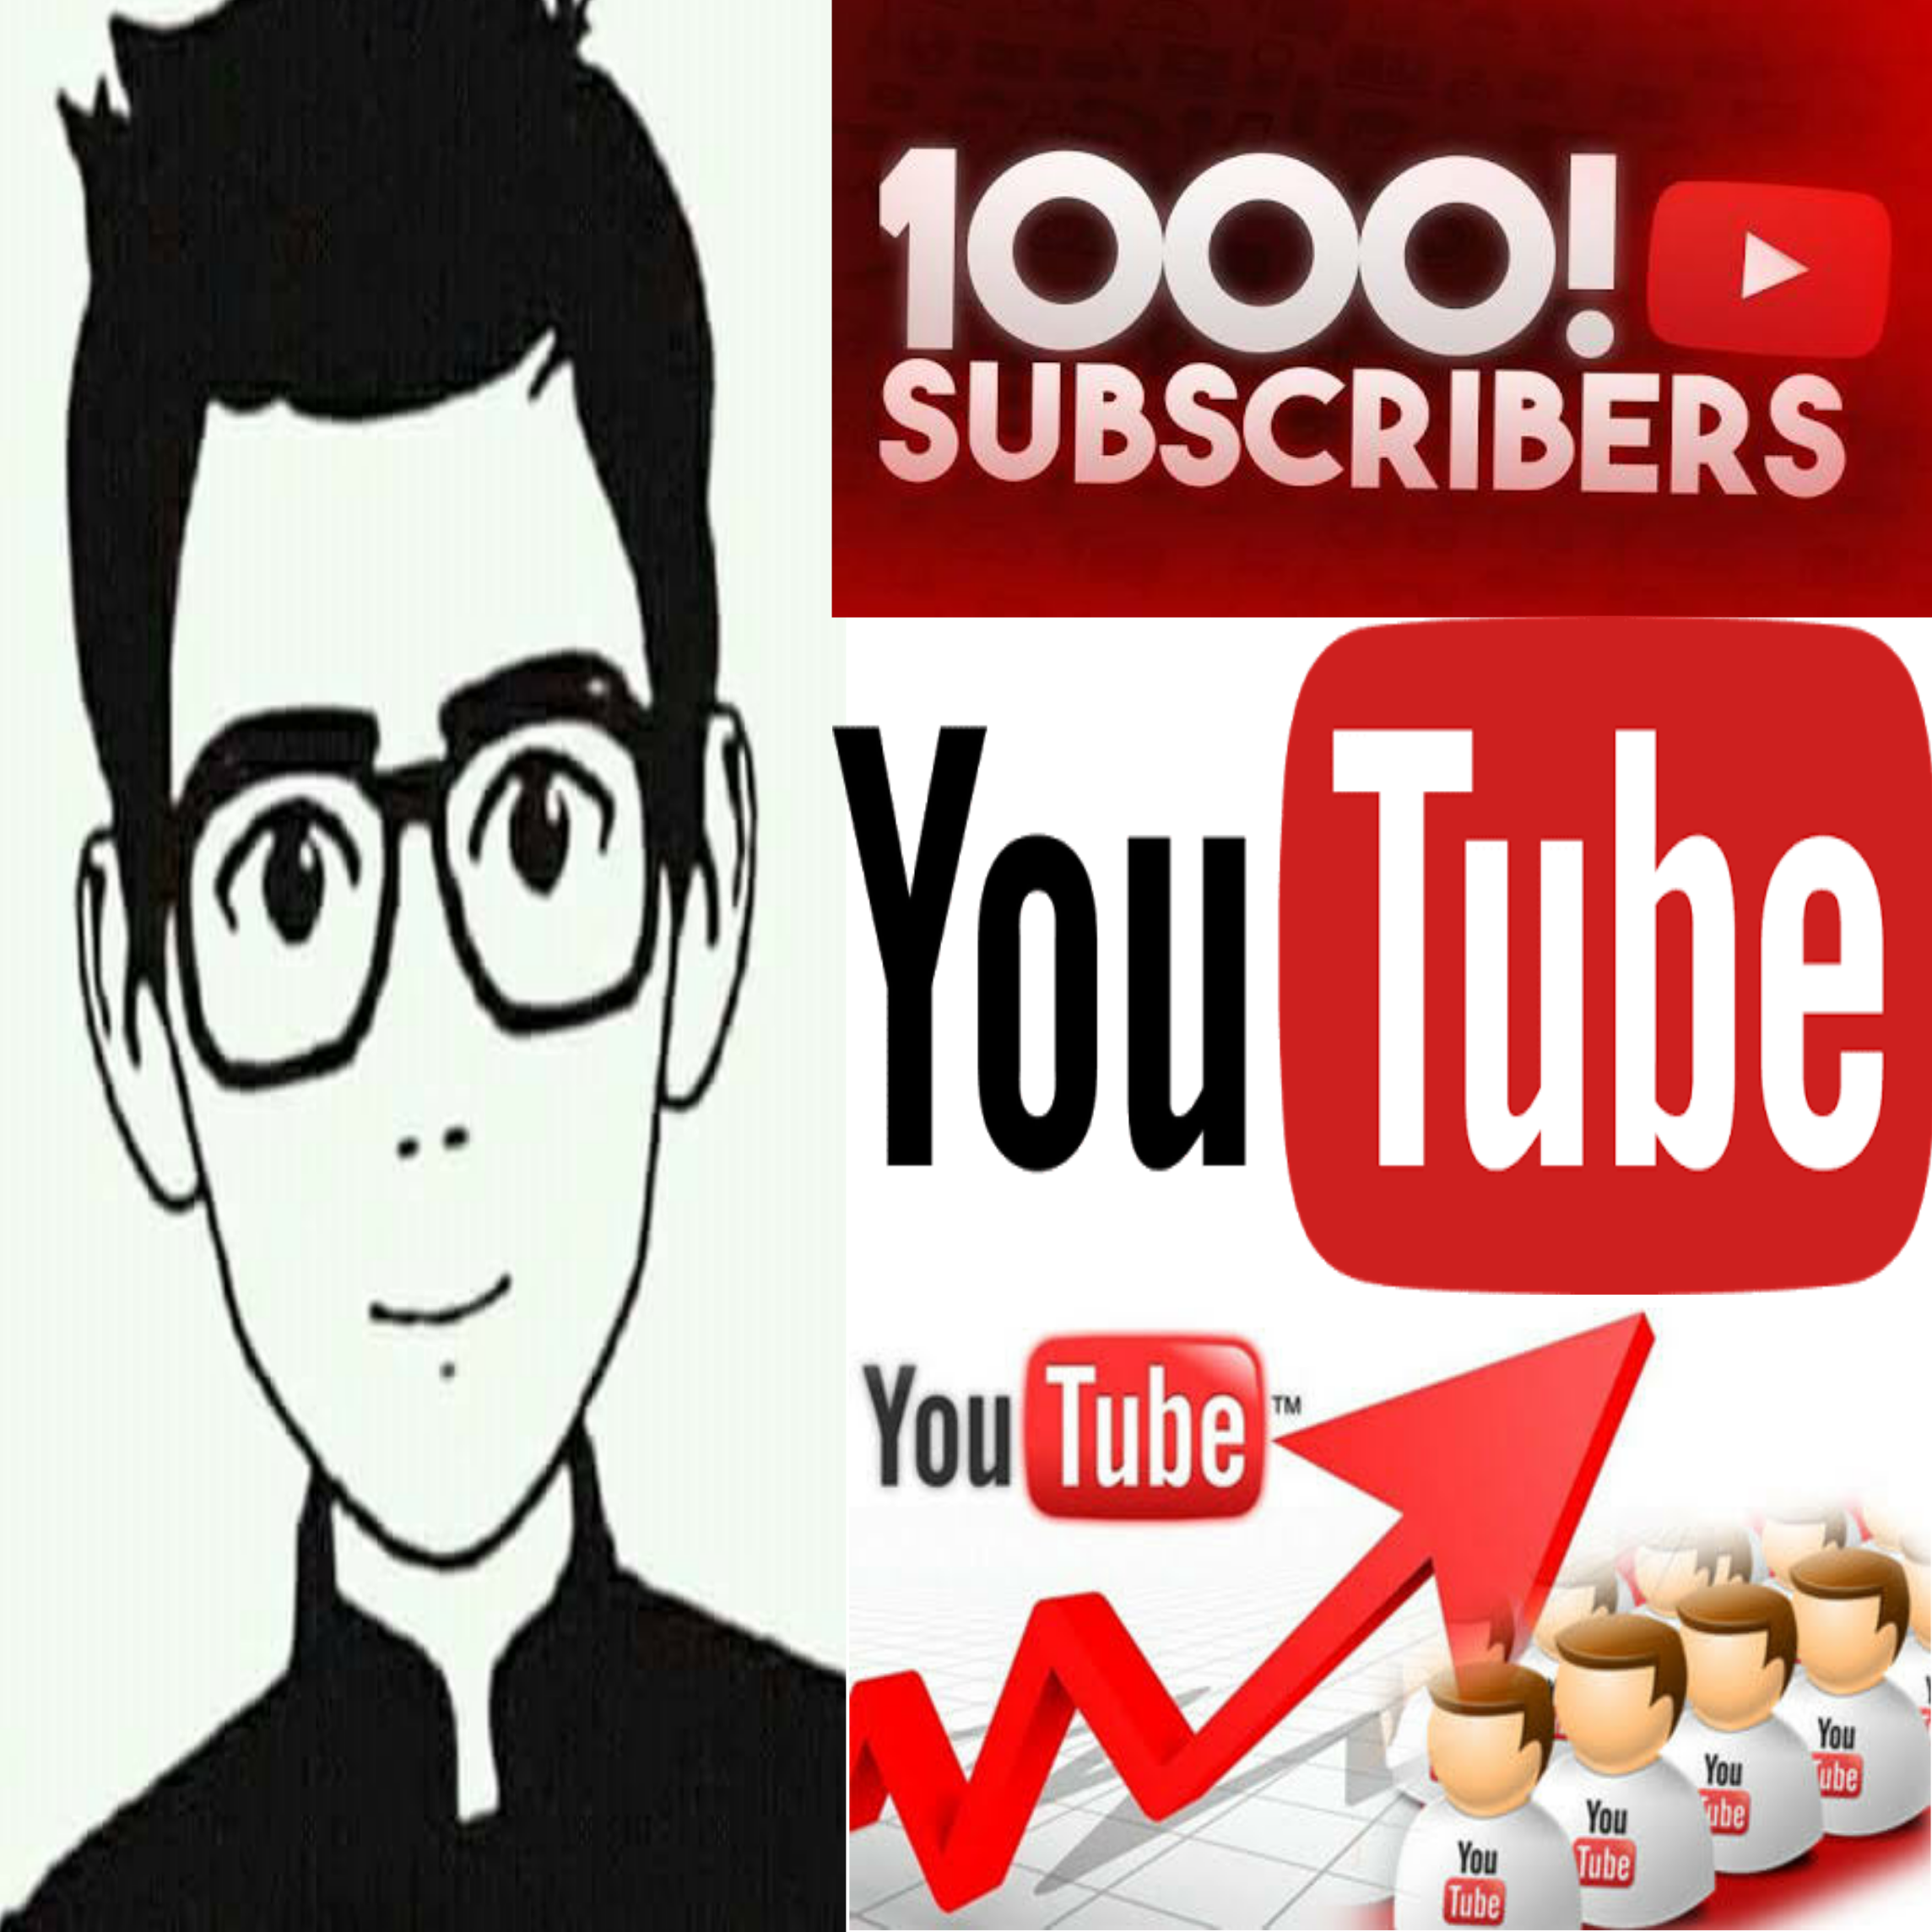 Non-Drop GUARANTEED 1000+  channel subscriber just 3 hours complete